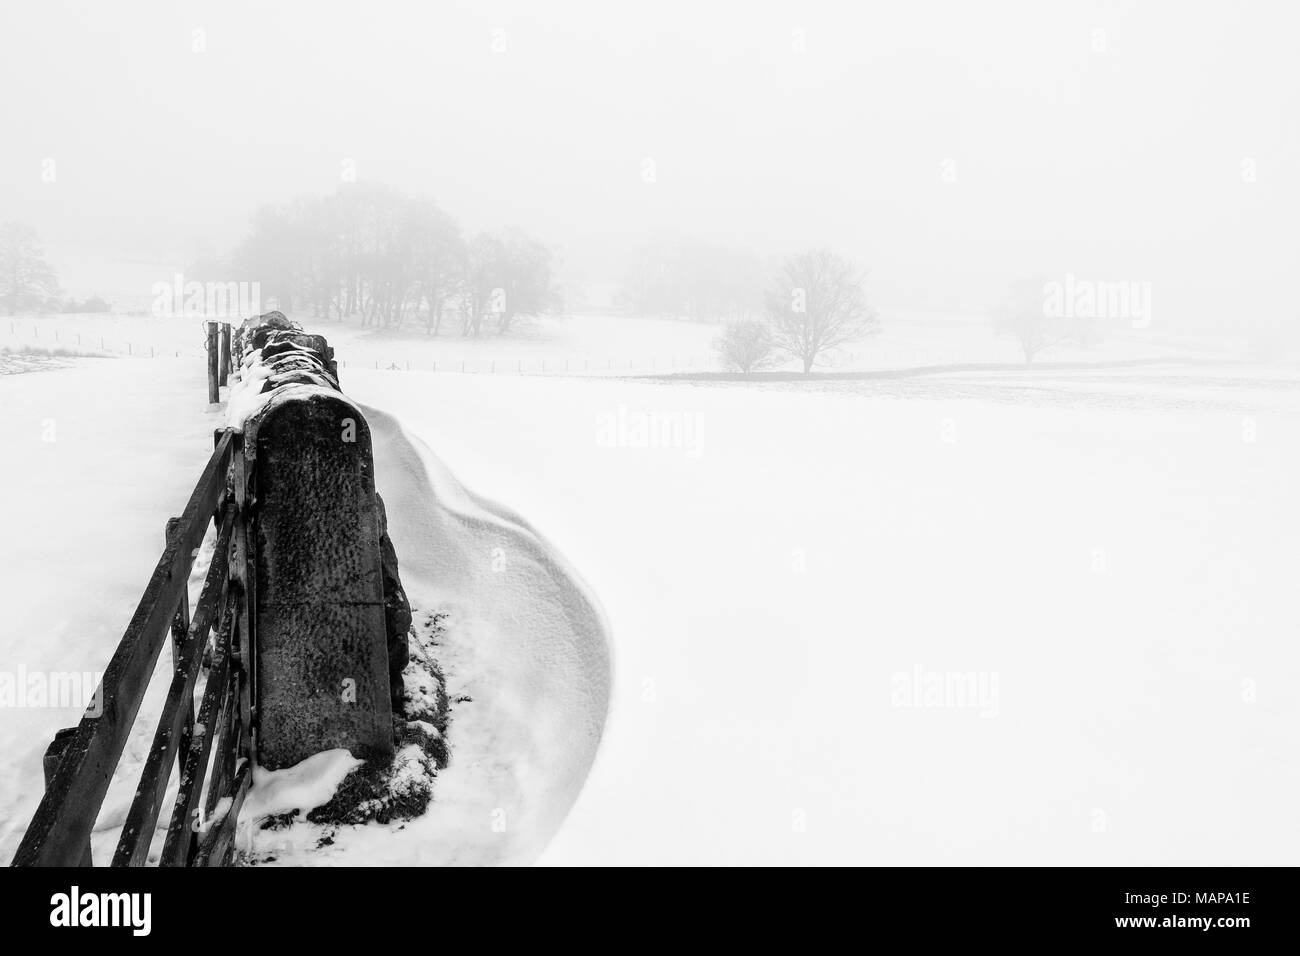 Simple monochrome image of a snowy scene of fields in the countryside with snowdrifts and a stone wall - Stock Image